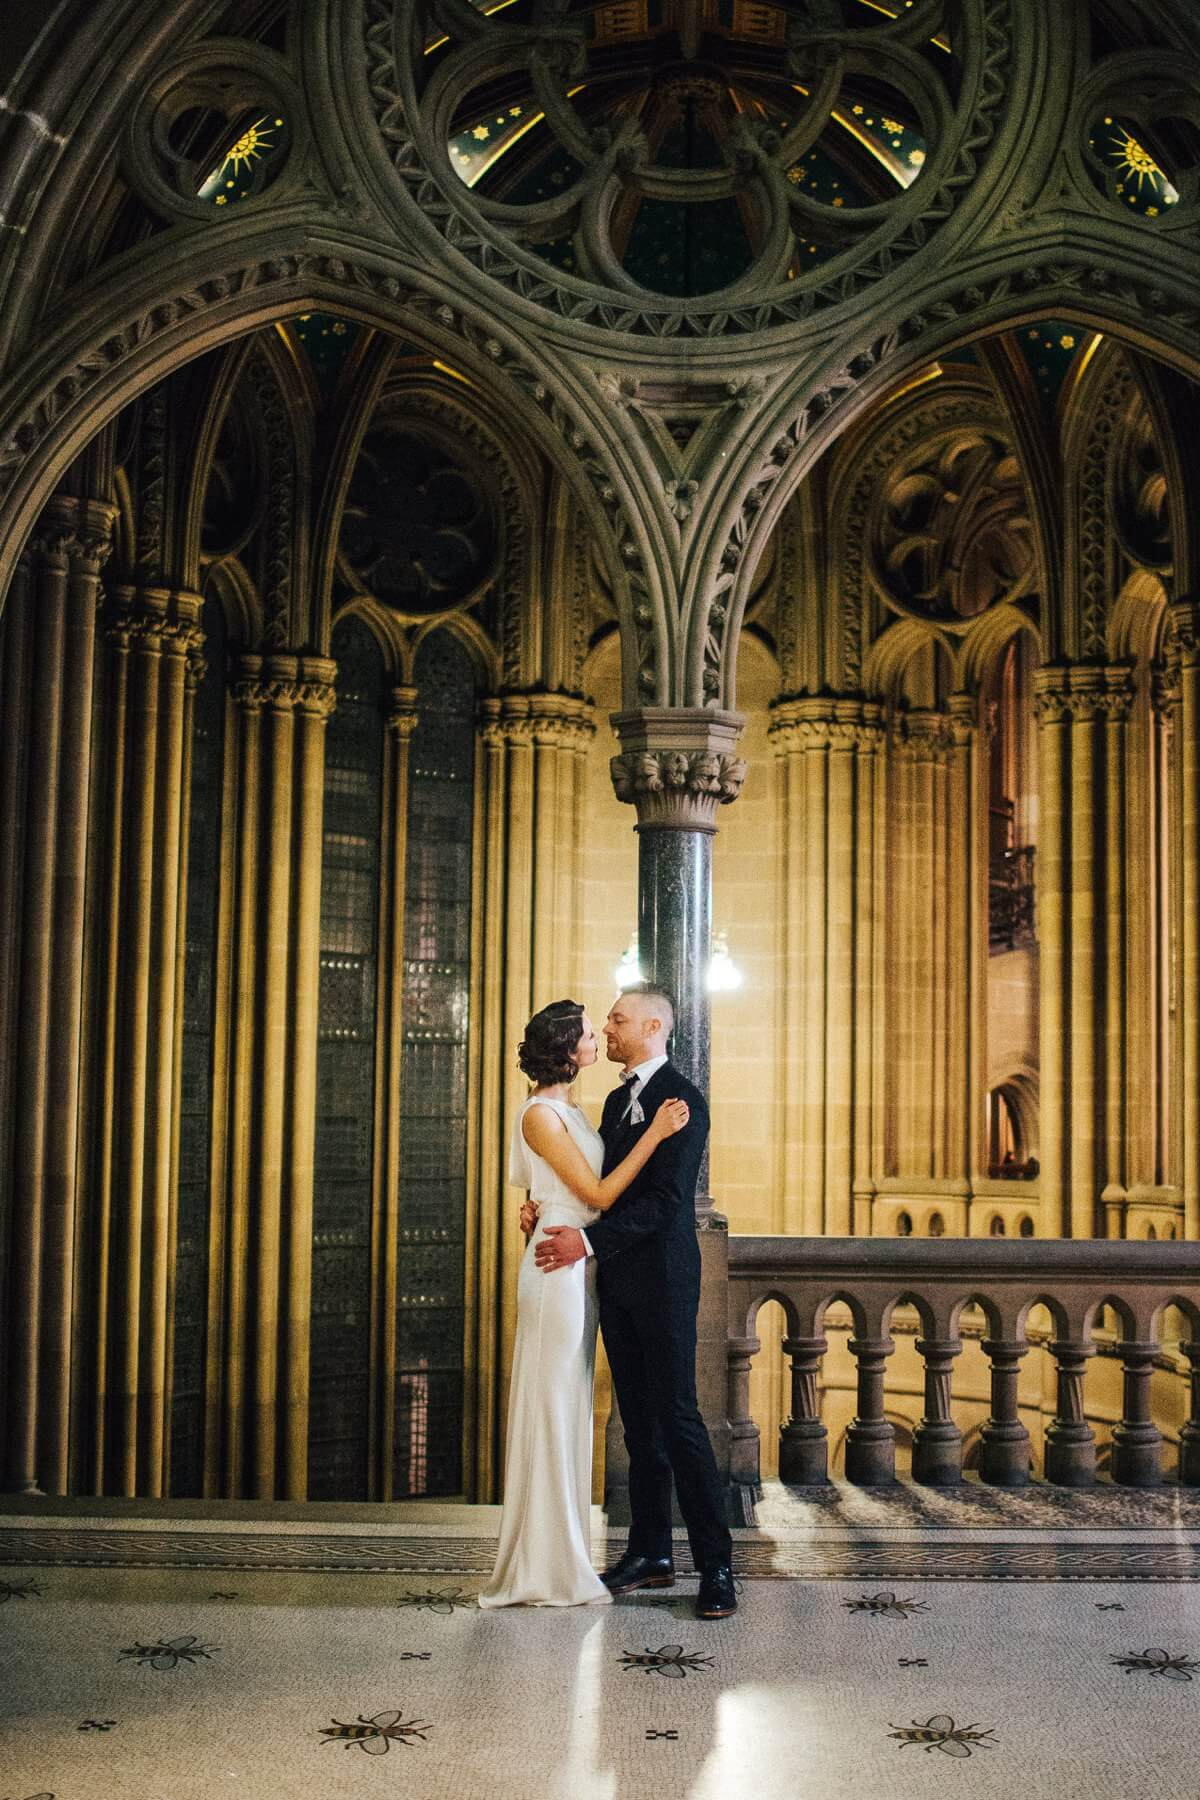 City centre wedding in Manchester's Town Hall